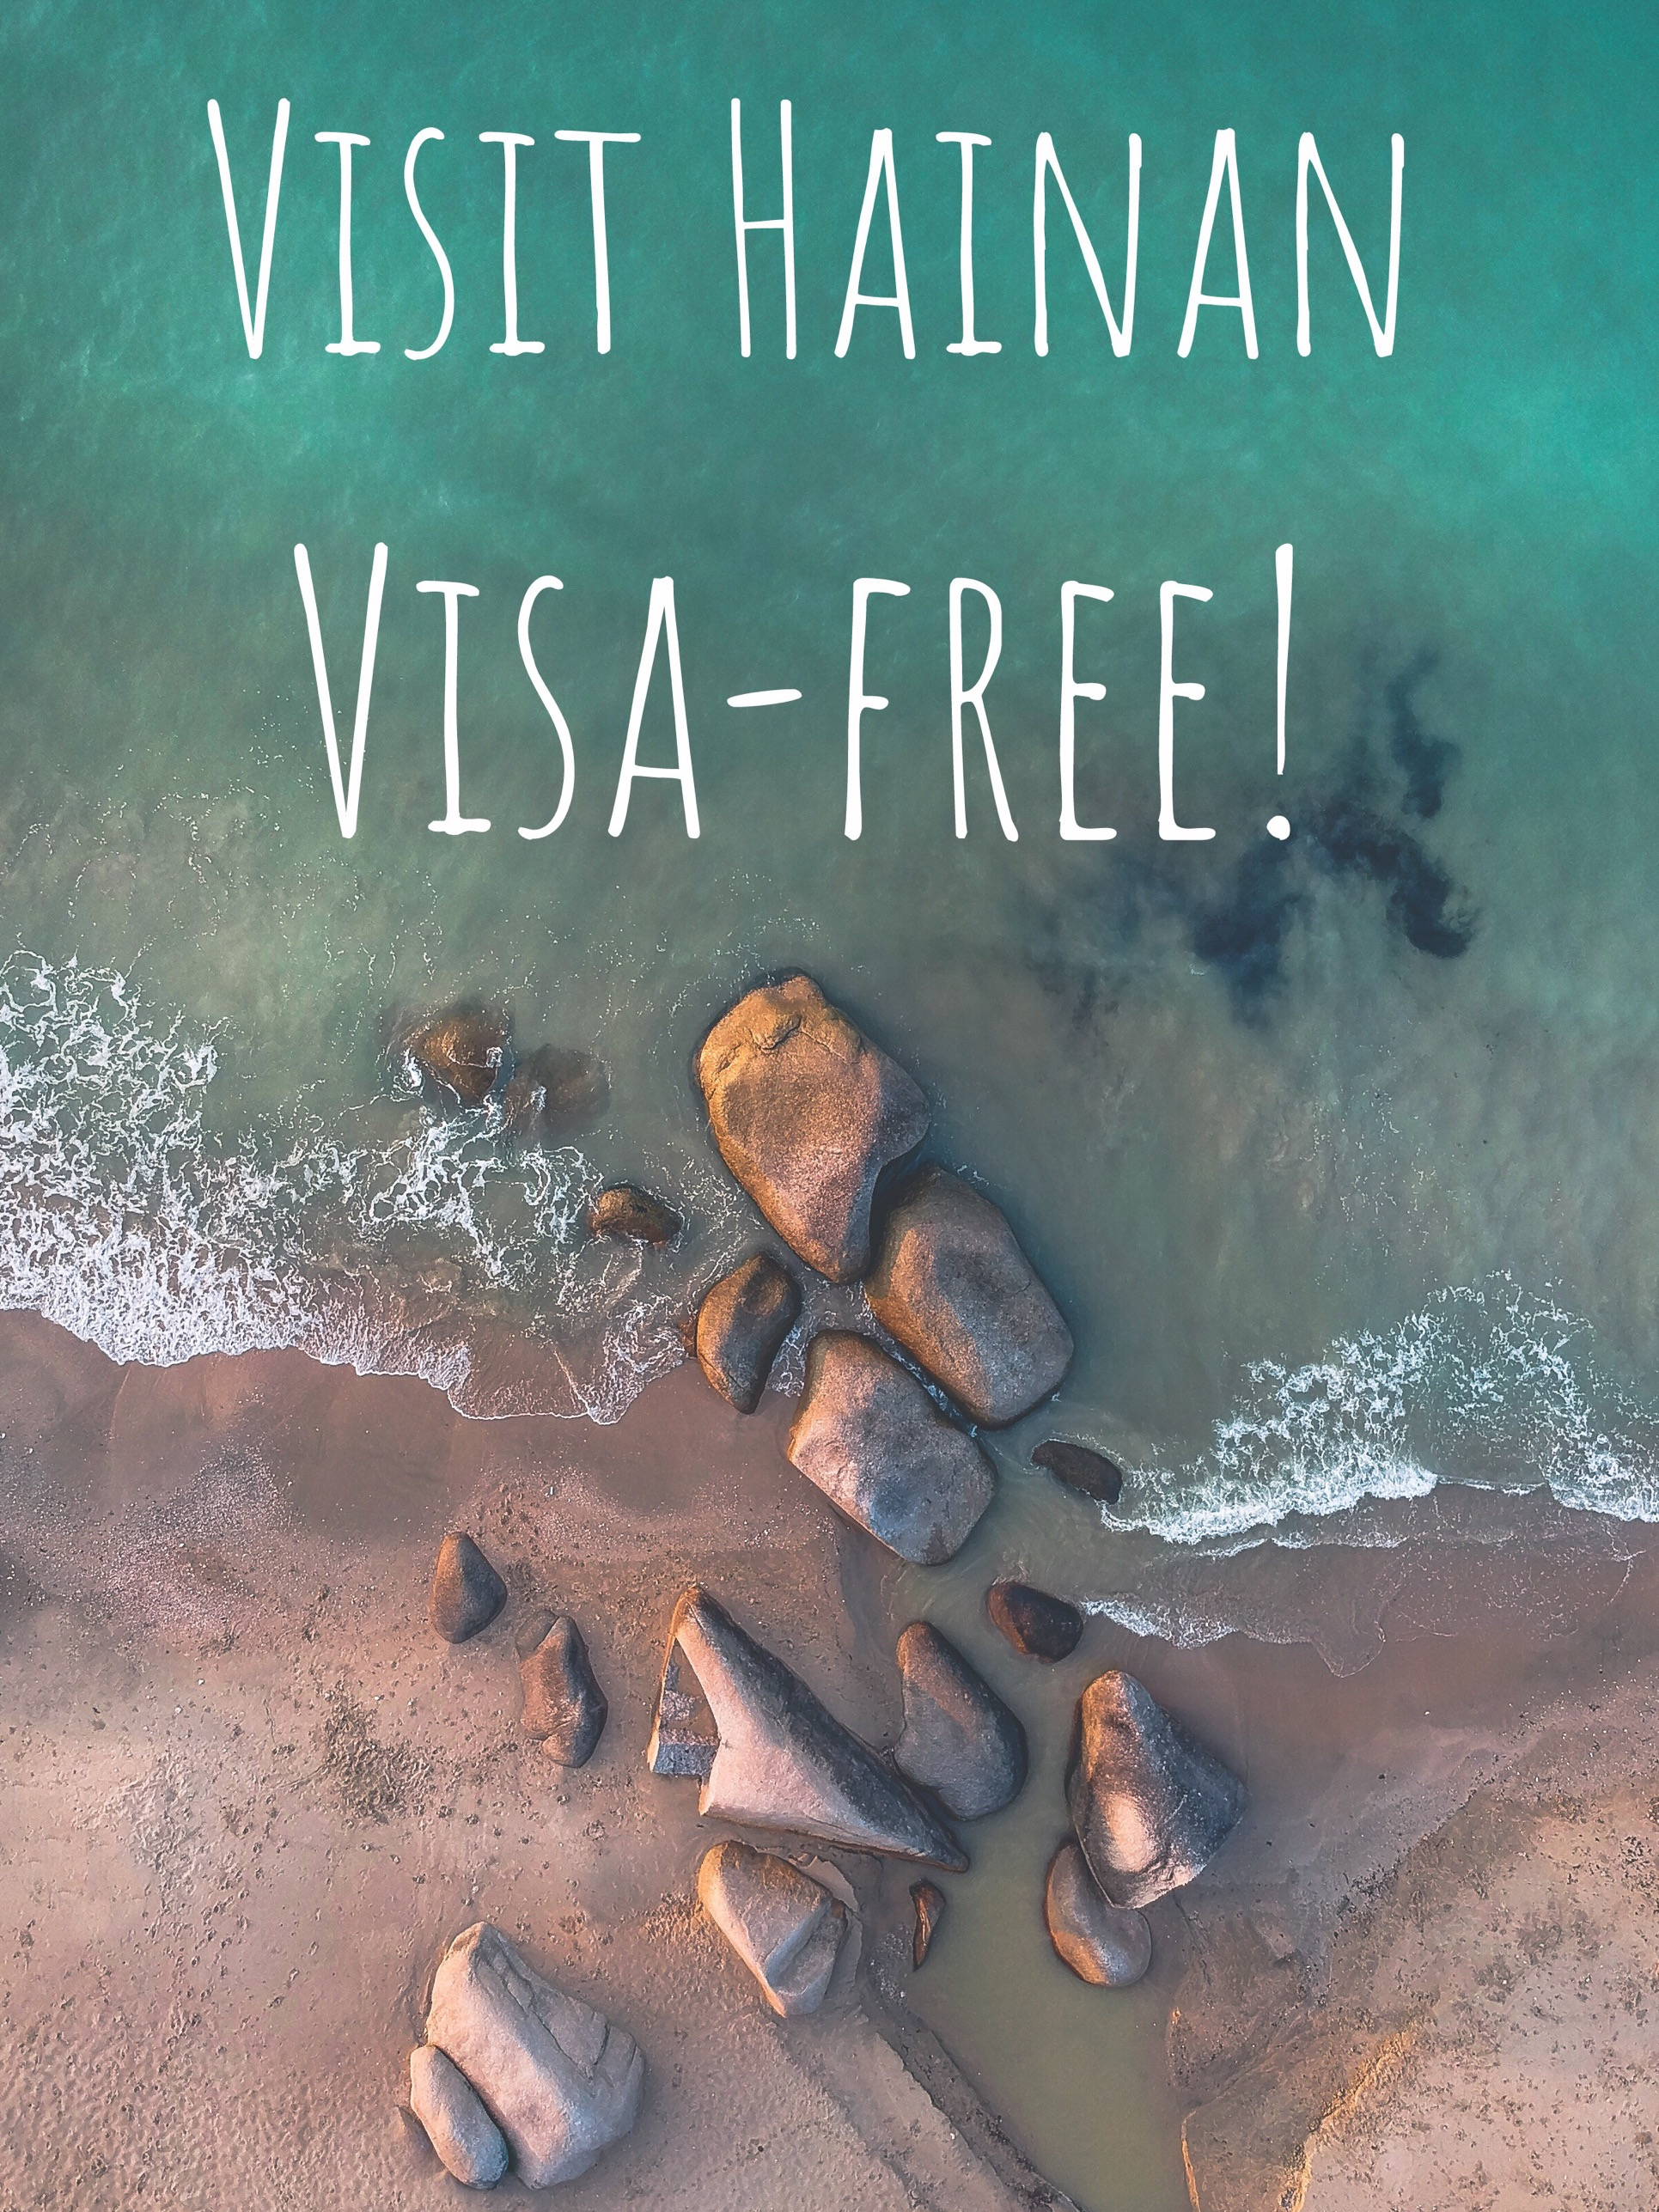 Travel agents, policies and contact details for Hainan's visa free travellers